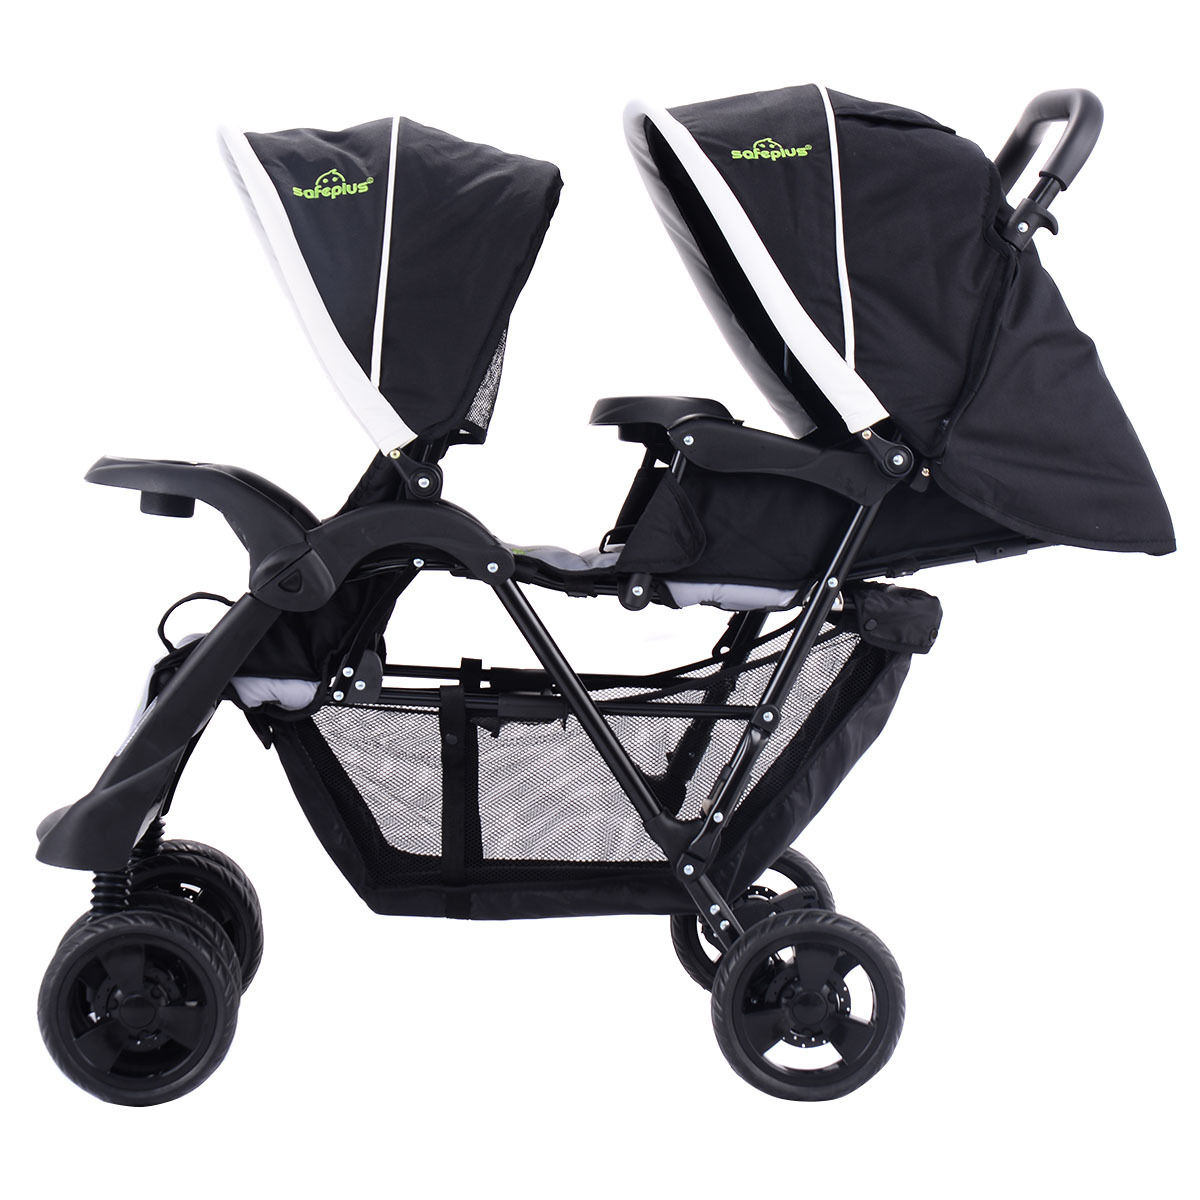 Travel System Tandem Stroller Details About Baby Double Stroller Twin Umbrella Kids Tandem Pushchair Foldable Travel System